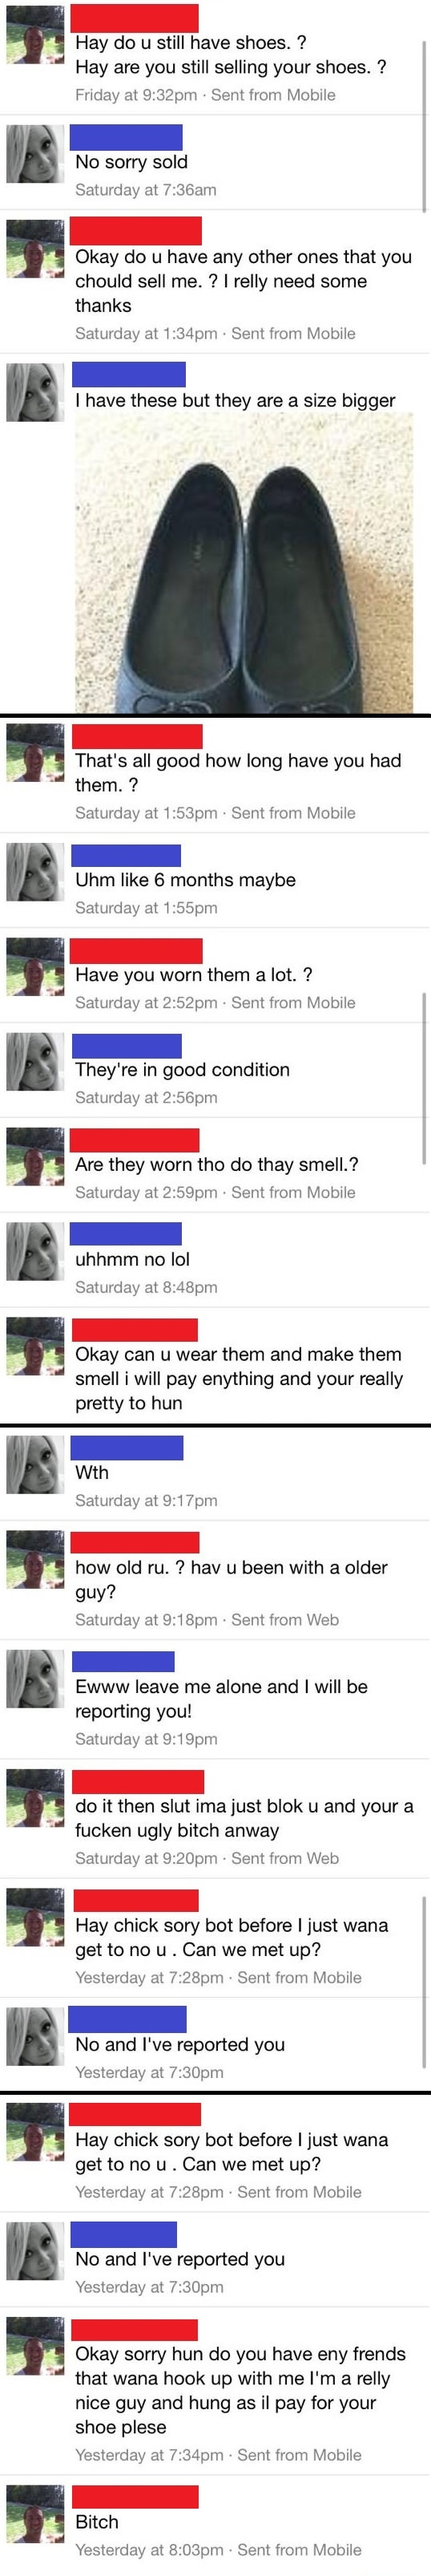 Can you wear them and make them smell